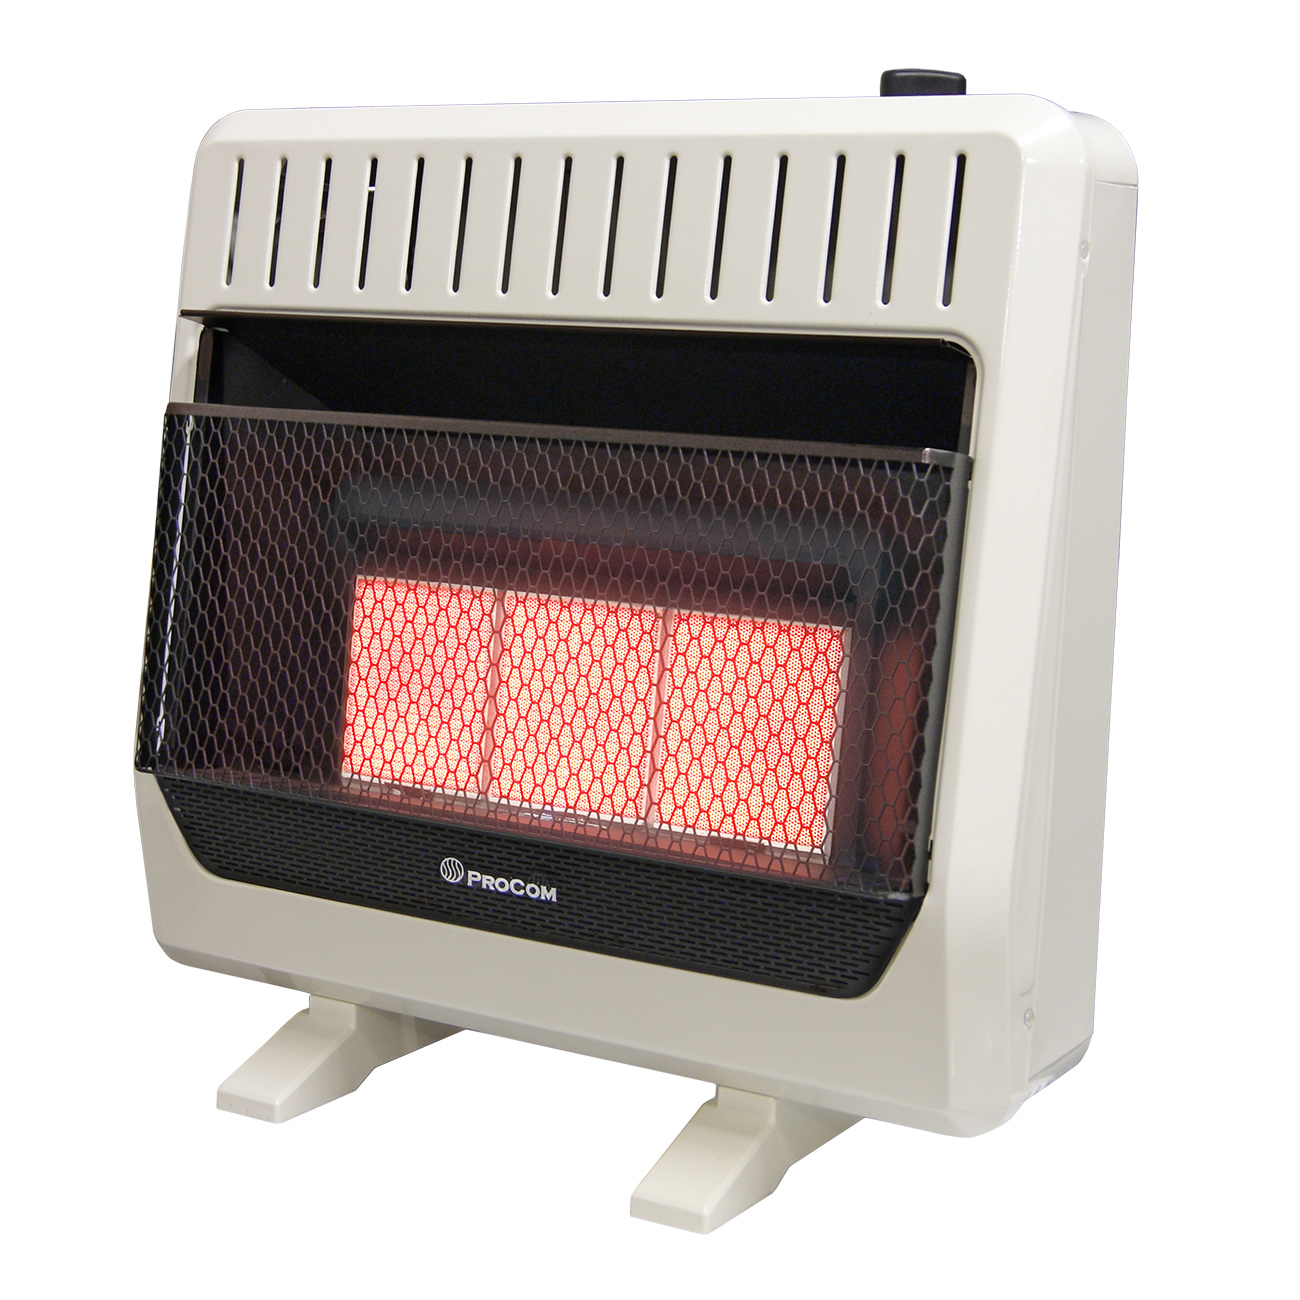 ProCom MG3TIR-BB ProCom Heating